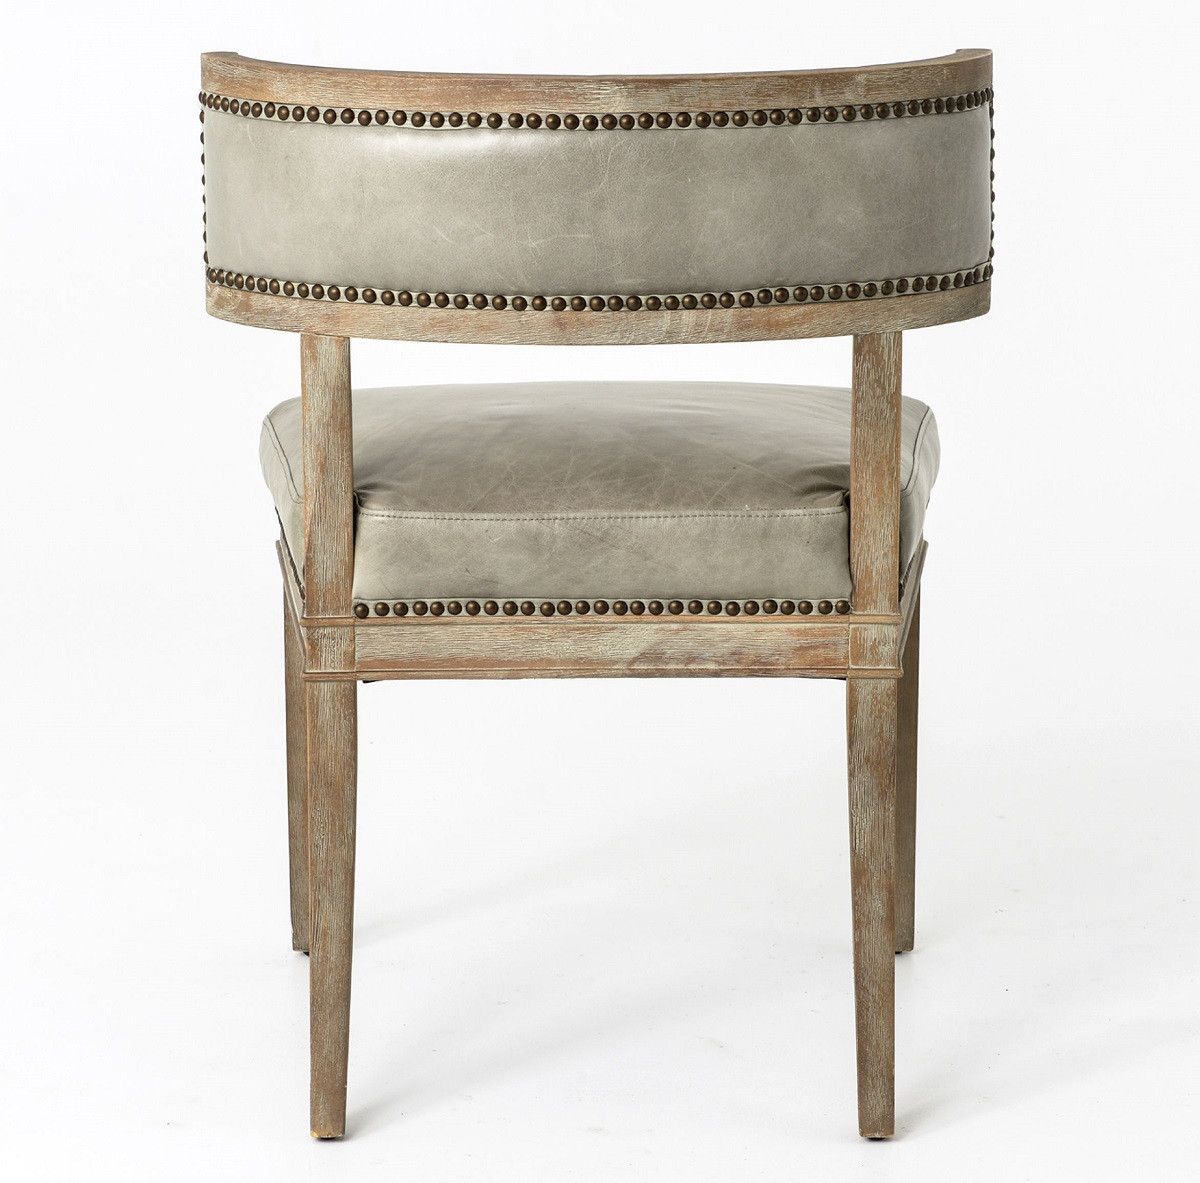 dining room chairs leather rosemary beach chair rental carter curved grey zin home